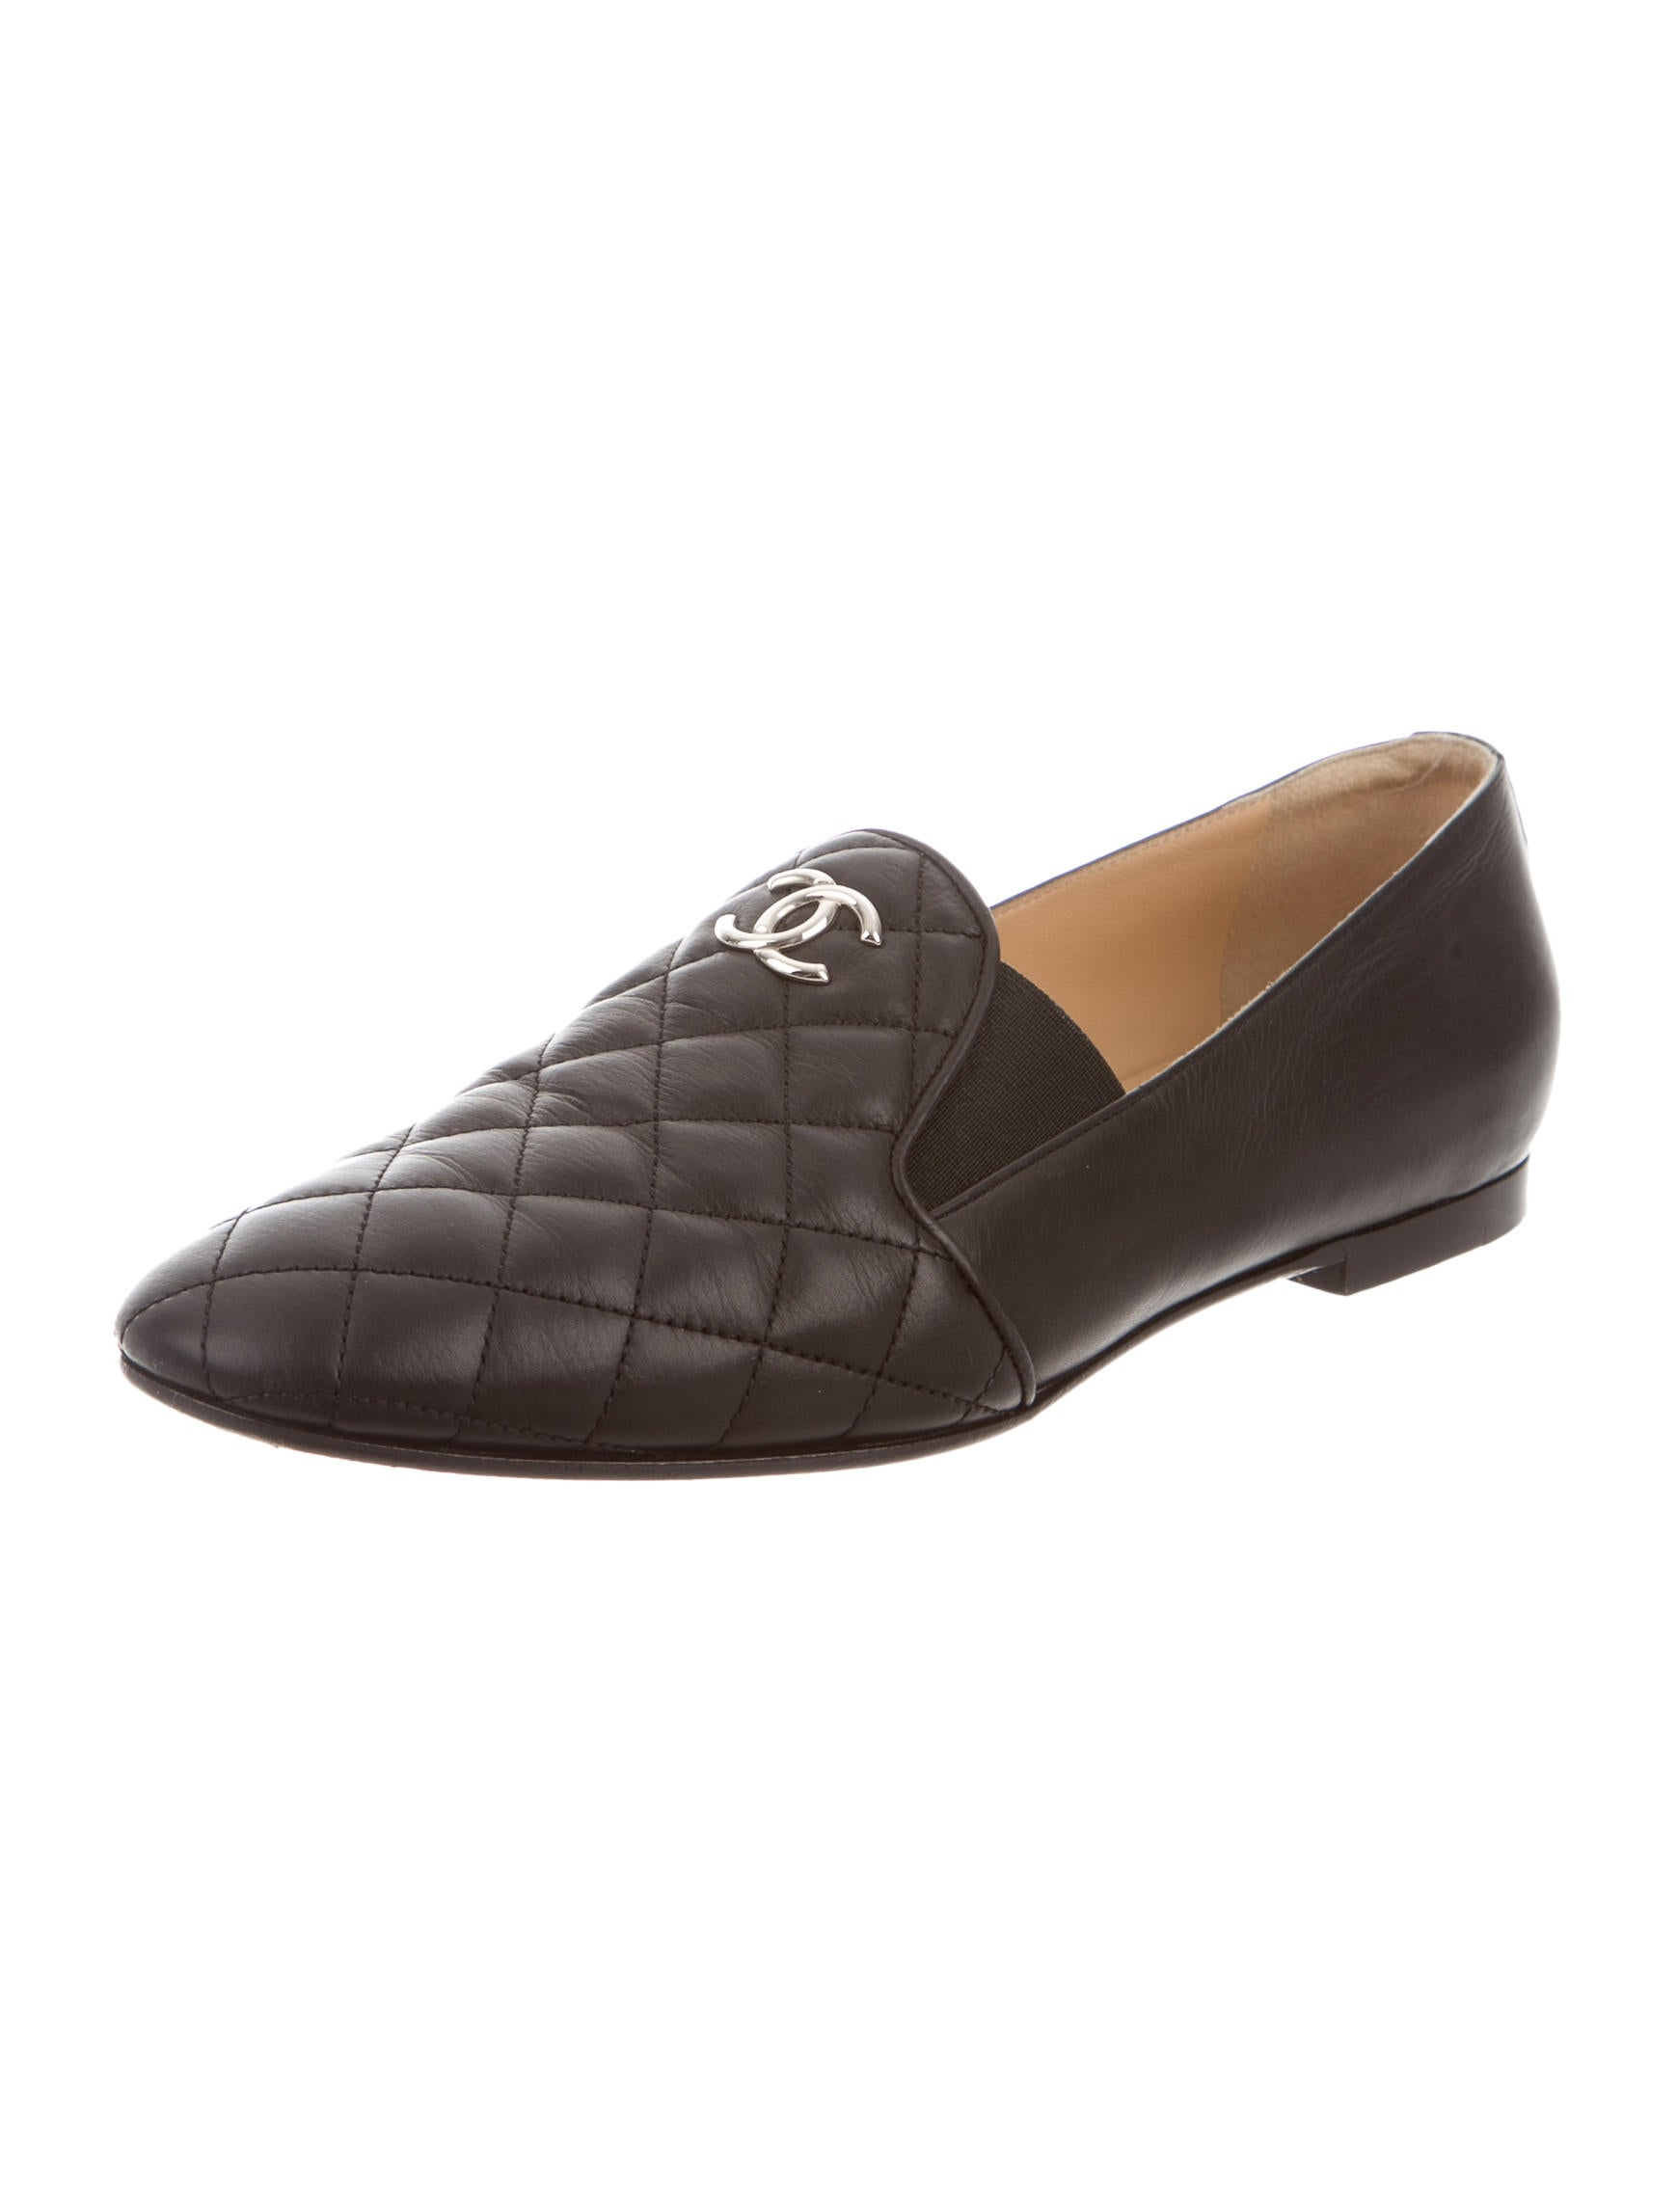 Chanel Quilted CC Loafers - Shoes - CHA123767 | The RealReal